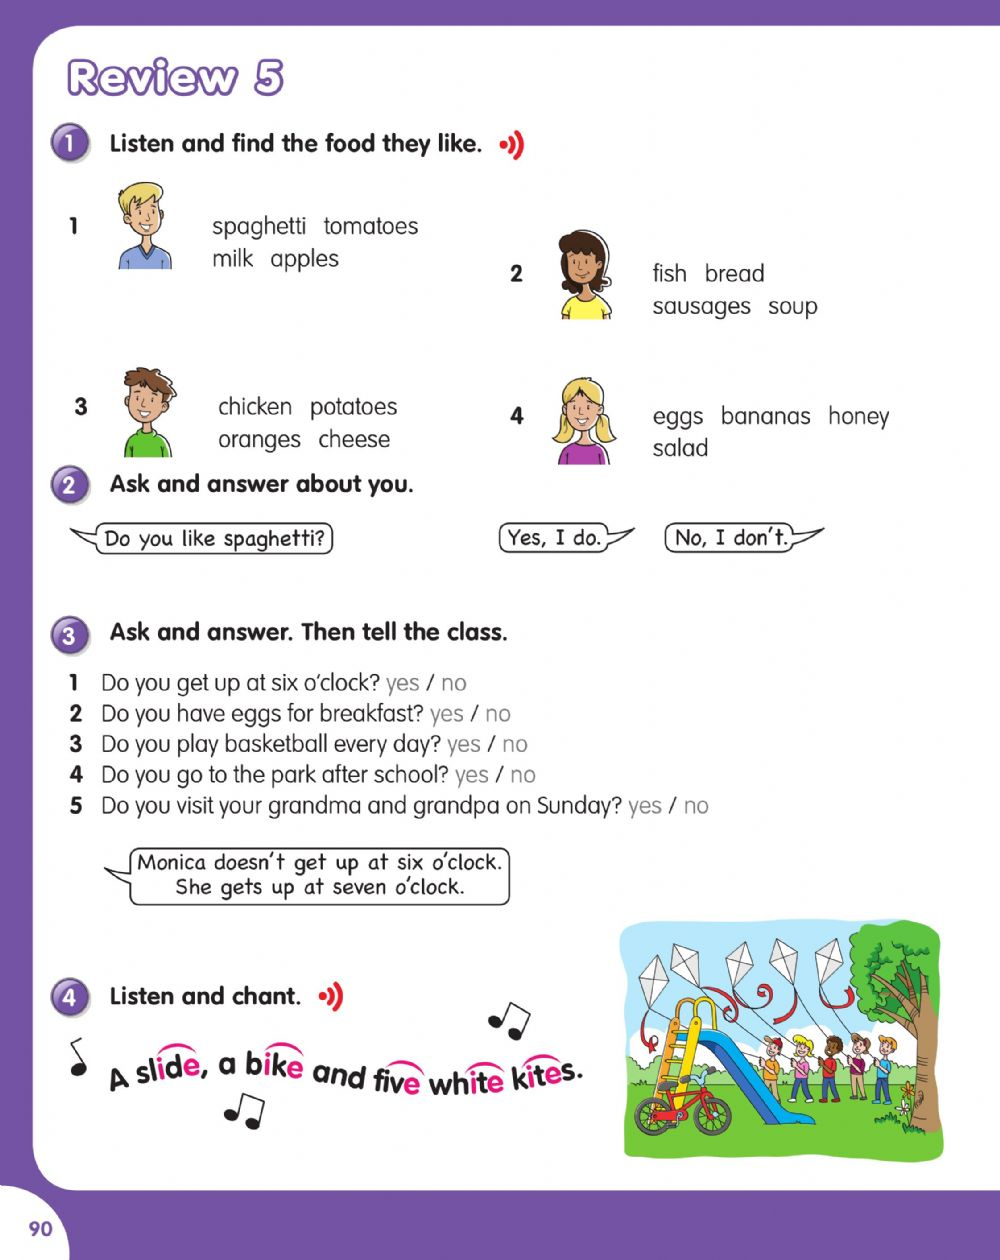 hight resolution of Review 5 Pupils book 3rd grade worksheet